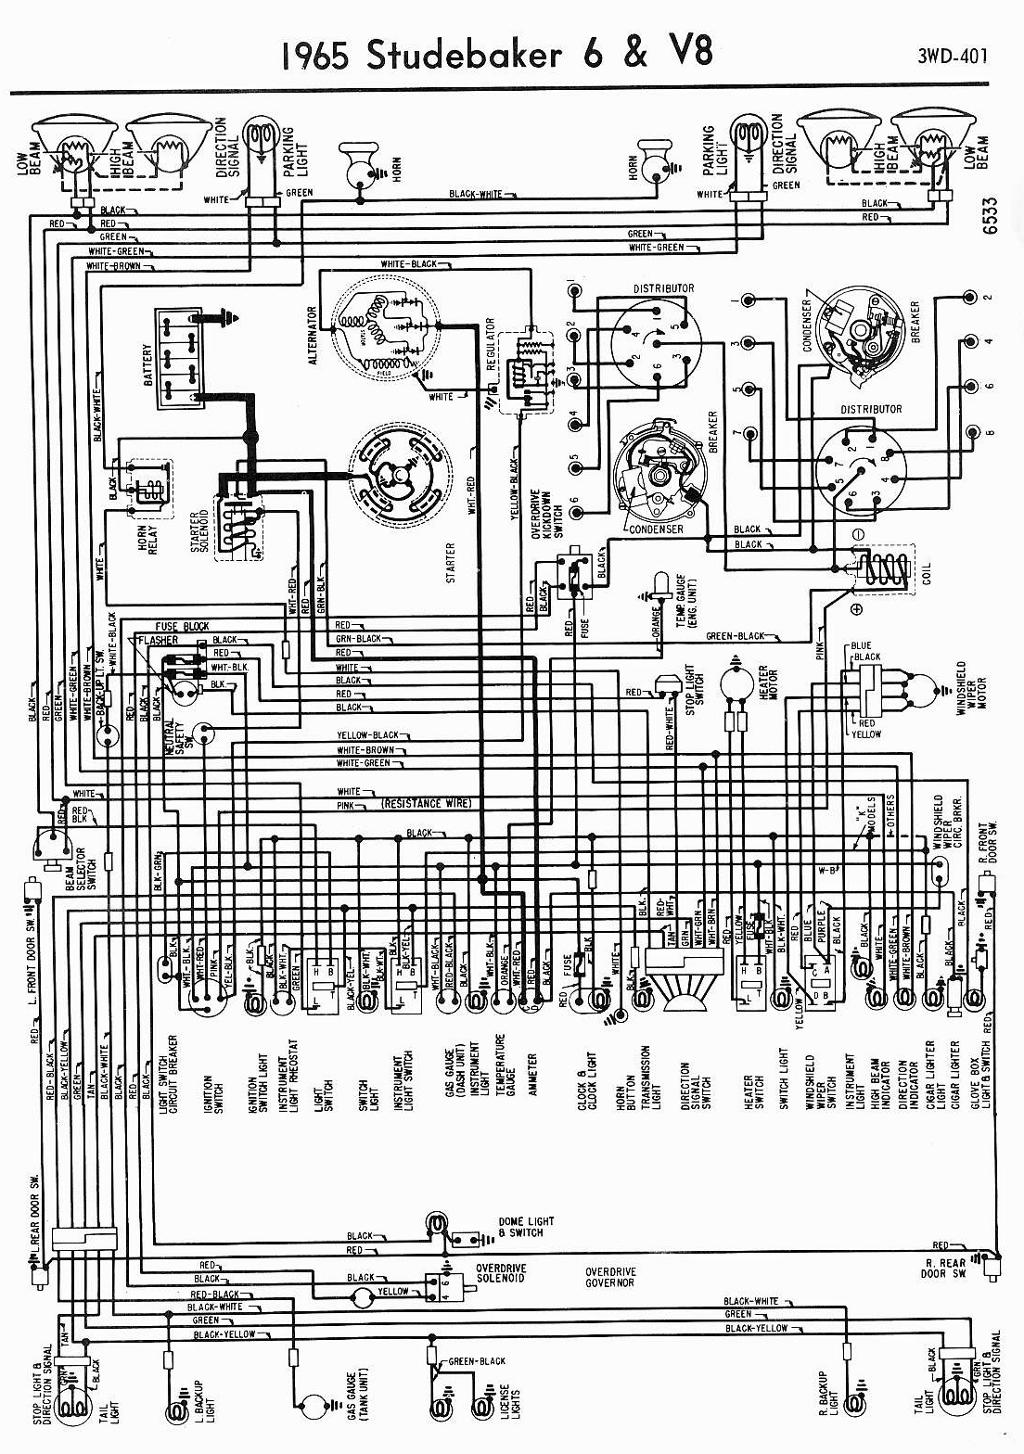 Famous Triumph 650 Wiring Diagram Sketch - Everything You Need to ...